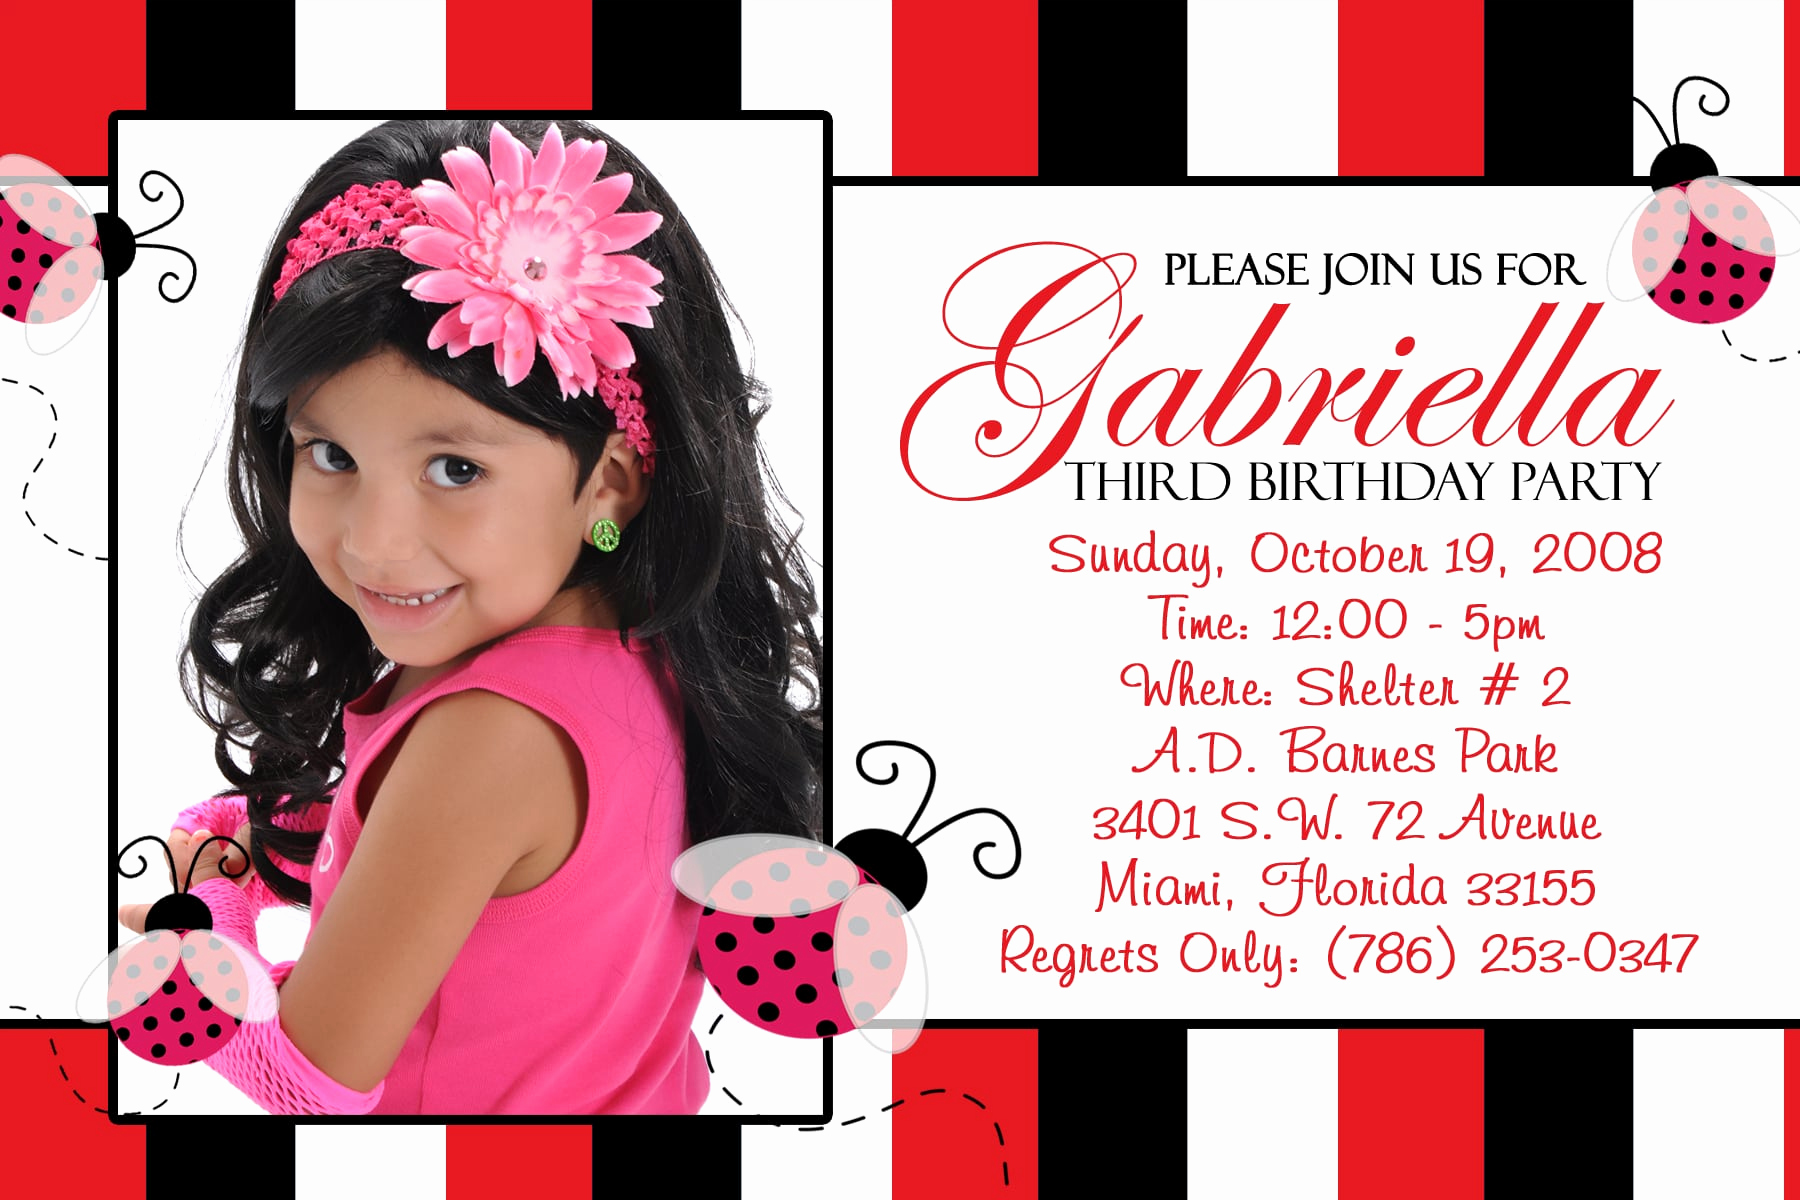 7th Birthday Invitation Wording Best Of 7th Birthday Invitation Template Free